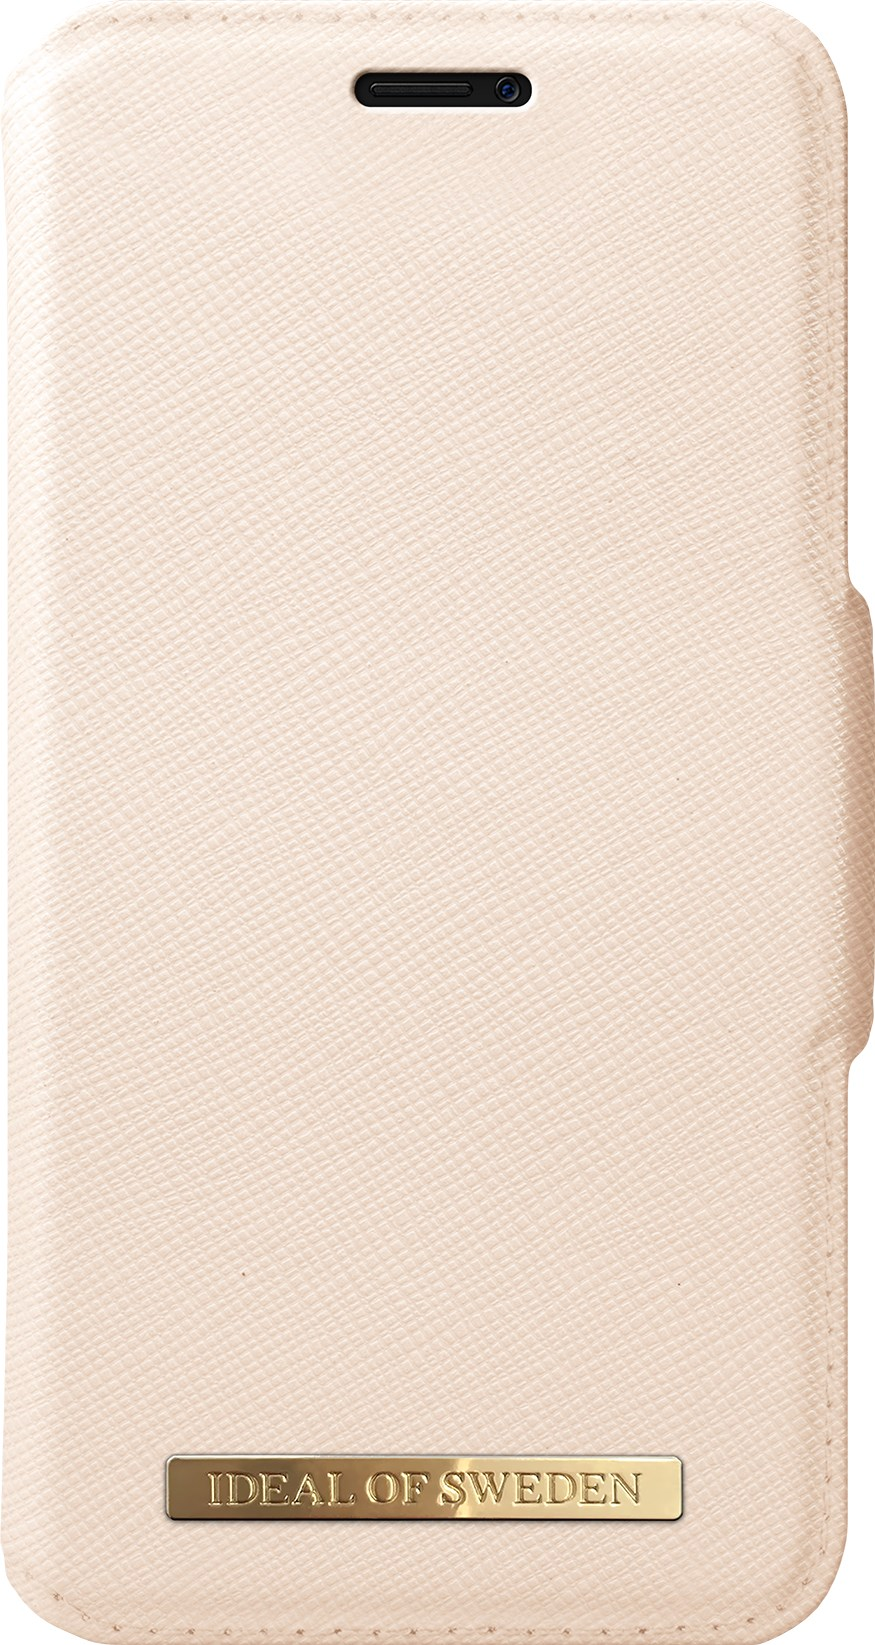 iDeal of Sweden Ideal Fashion Wallet Iphone Xr Beige